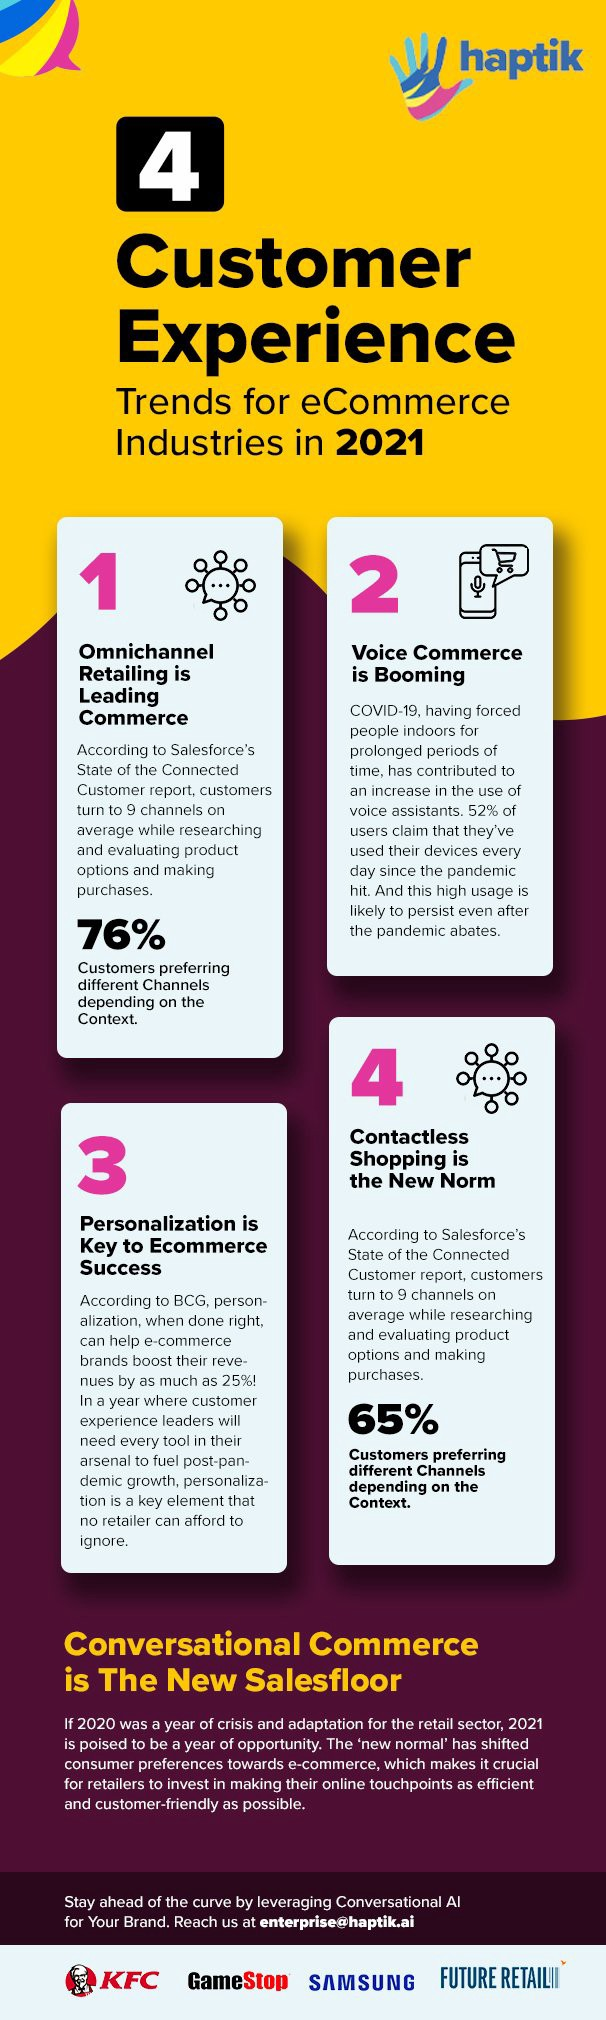 4 Customer Experience Trends for E-commerce Industries in 2021